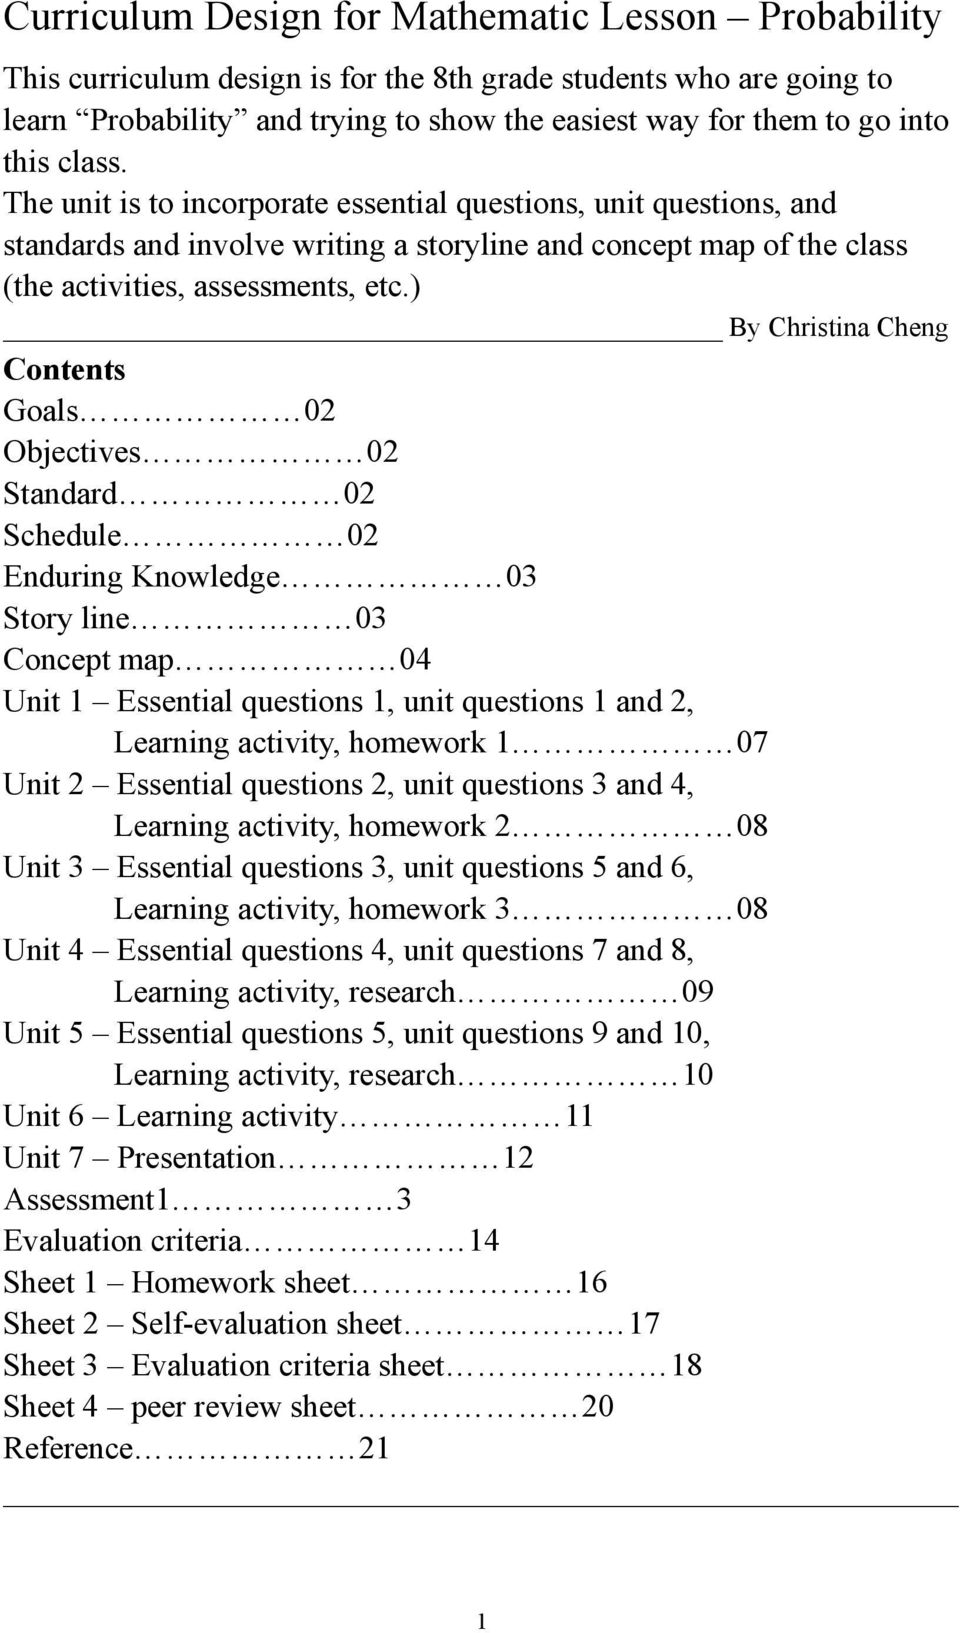 ) By Christina Cheng Contents Goals 02 Objectives 02 Standard 02 Schedule 02 Enduring Knowledge 03 Story line 03 Concept map 04 Unit 1 Essential questions 1, unit questions 1 and 2, Learning